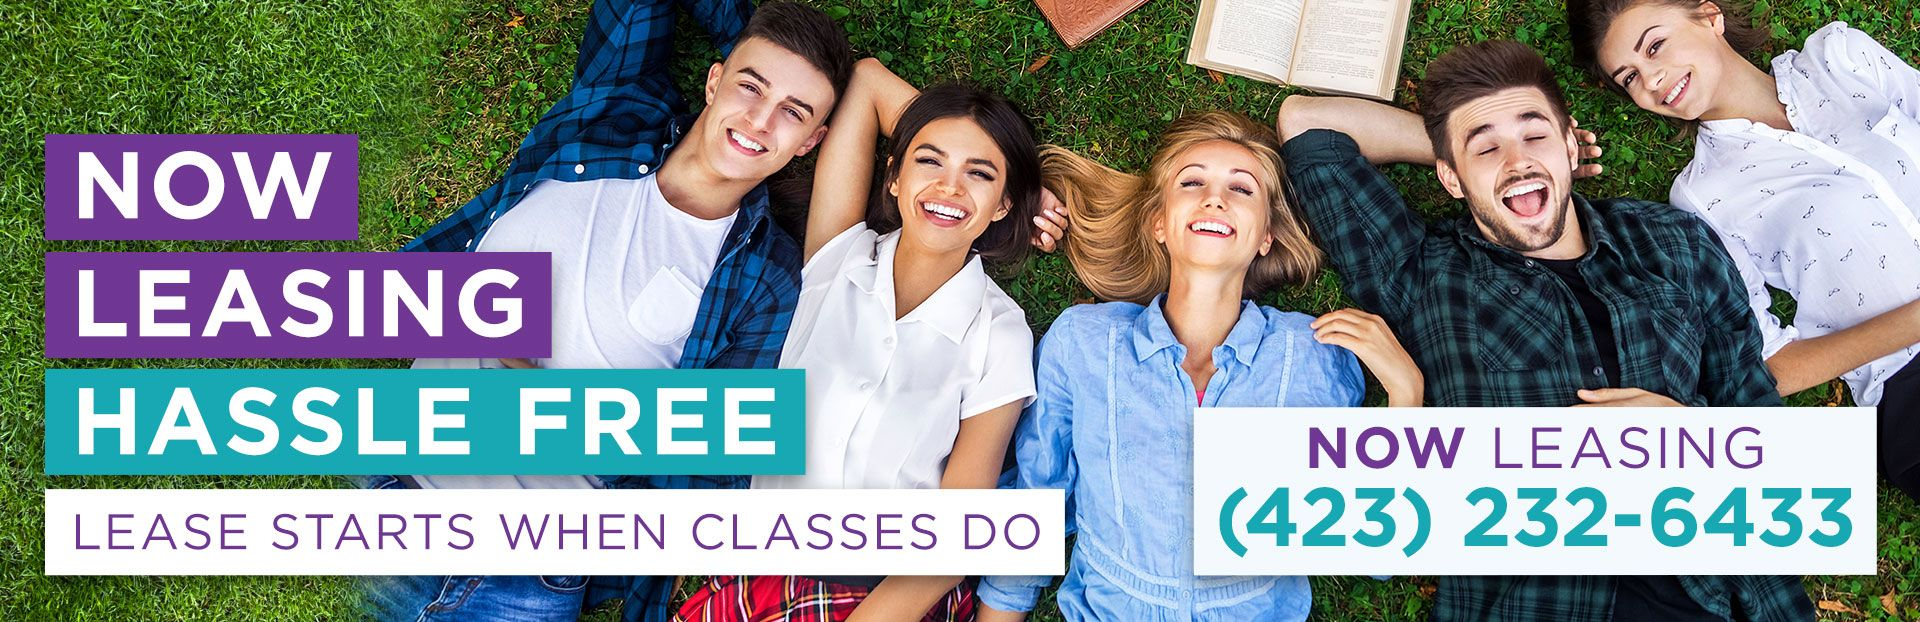 Now Leasing Hassle Free | Lease Starts When Classes Do